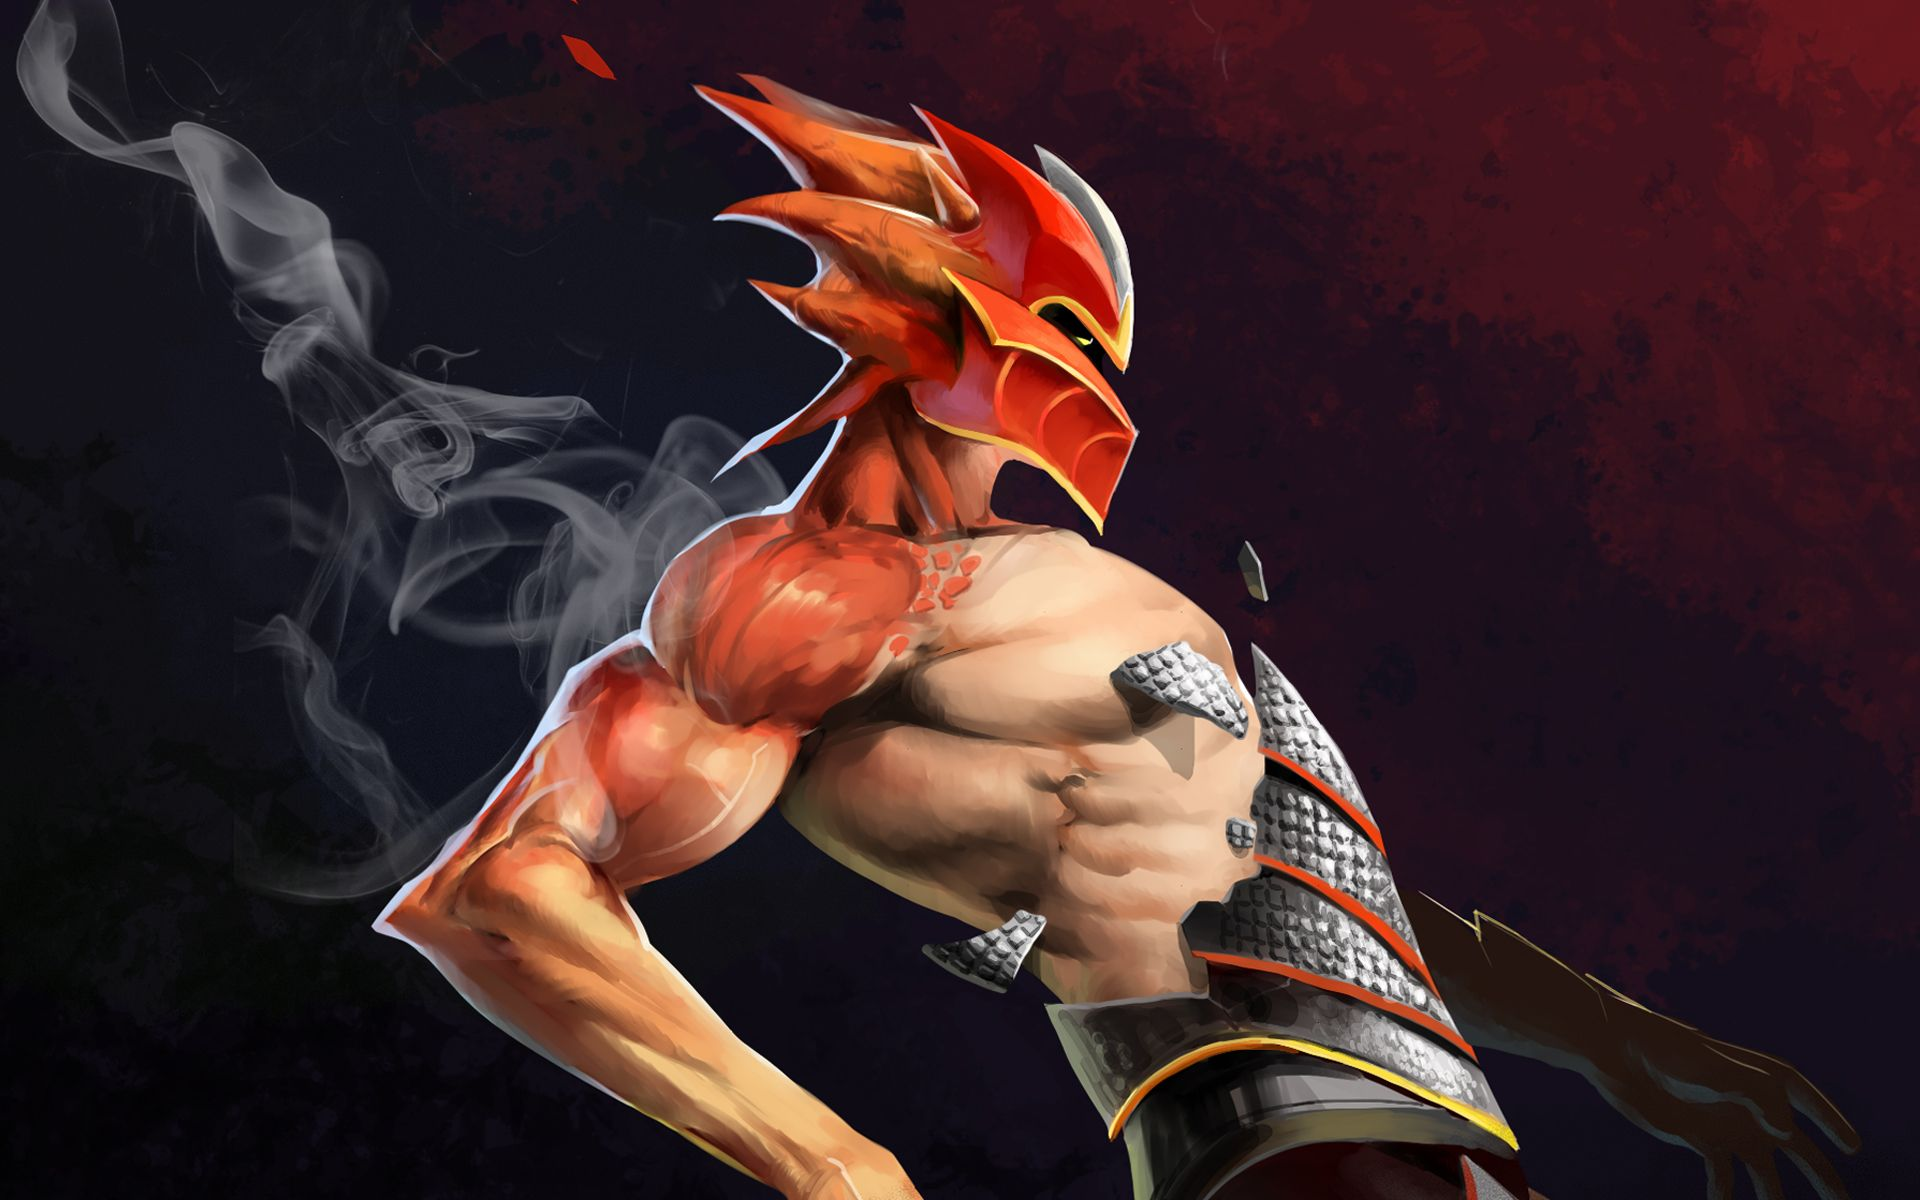 Dota 2 dragon knight wallpapers picture as wallpaper hd dota 2 dota 2 dragon knight wallpapers picture as wallpaper hd dota 2 pinterest wallpaper pictures knight and mac desktop voltagebd Gallery